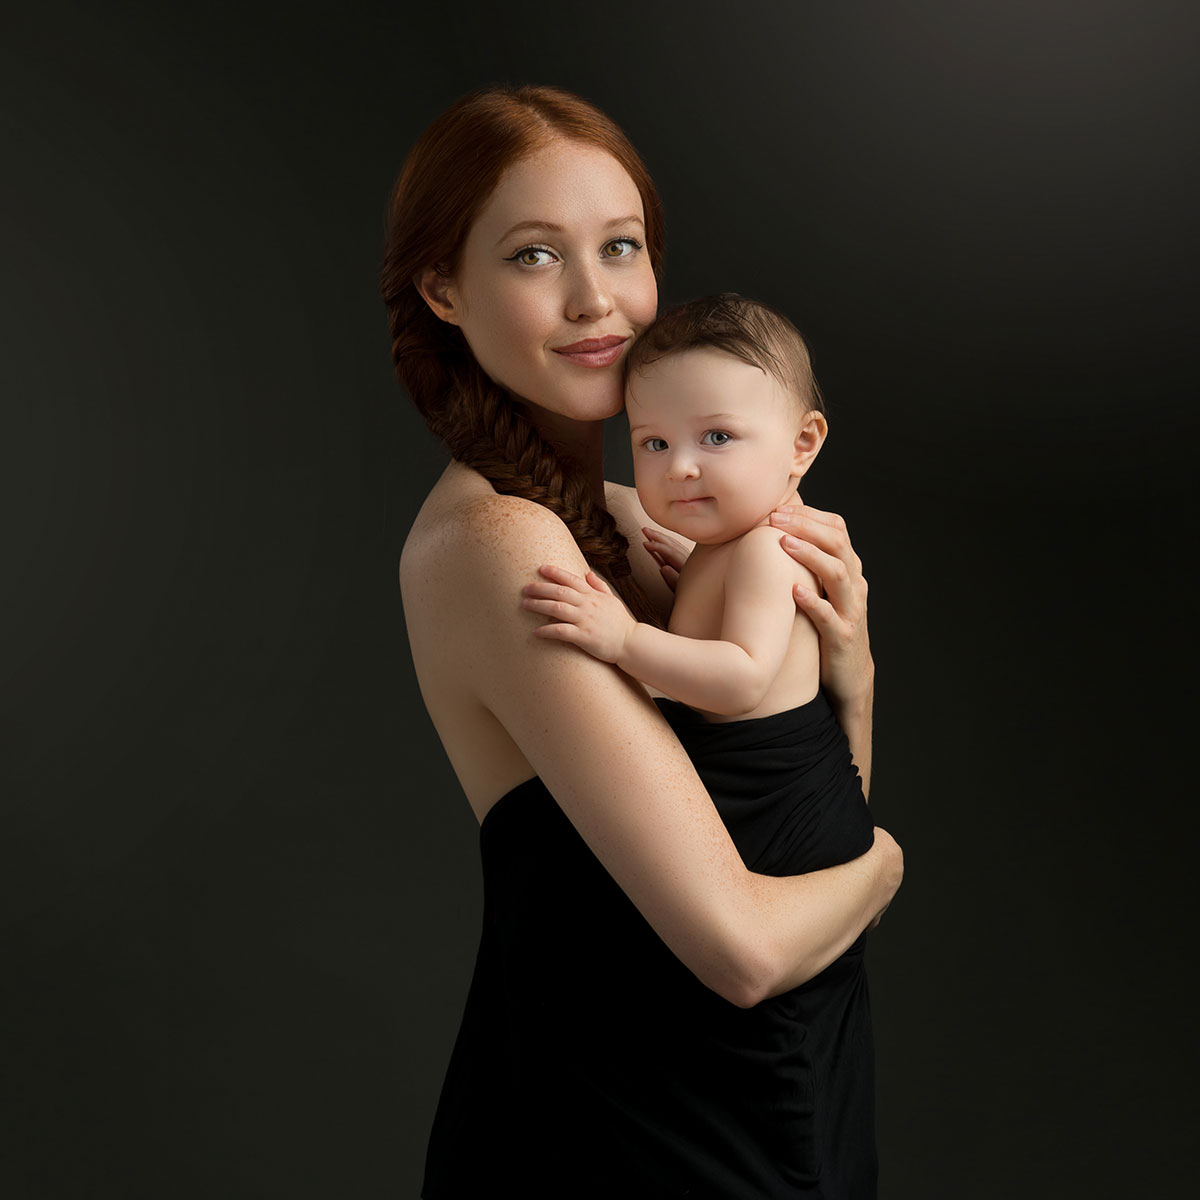 Mother in black holding her beautiful baby in a photo studio